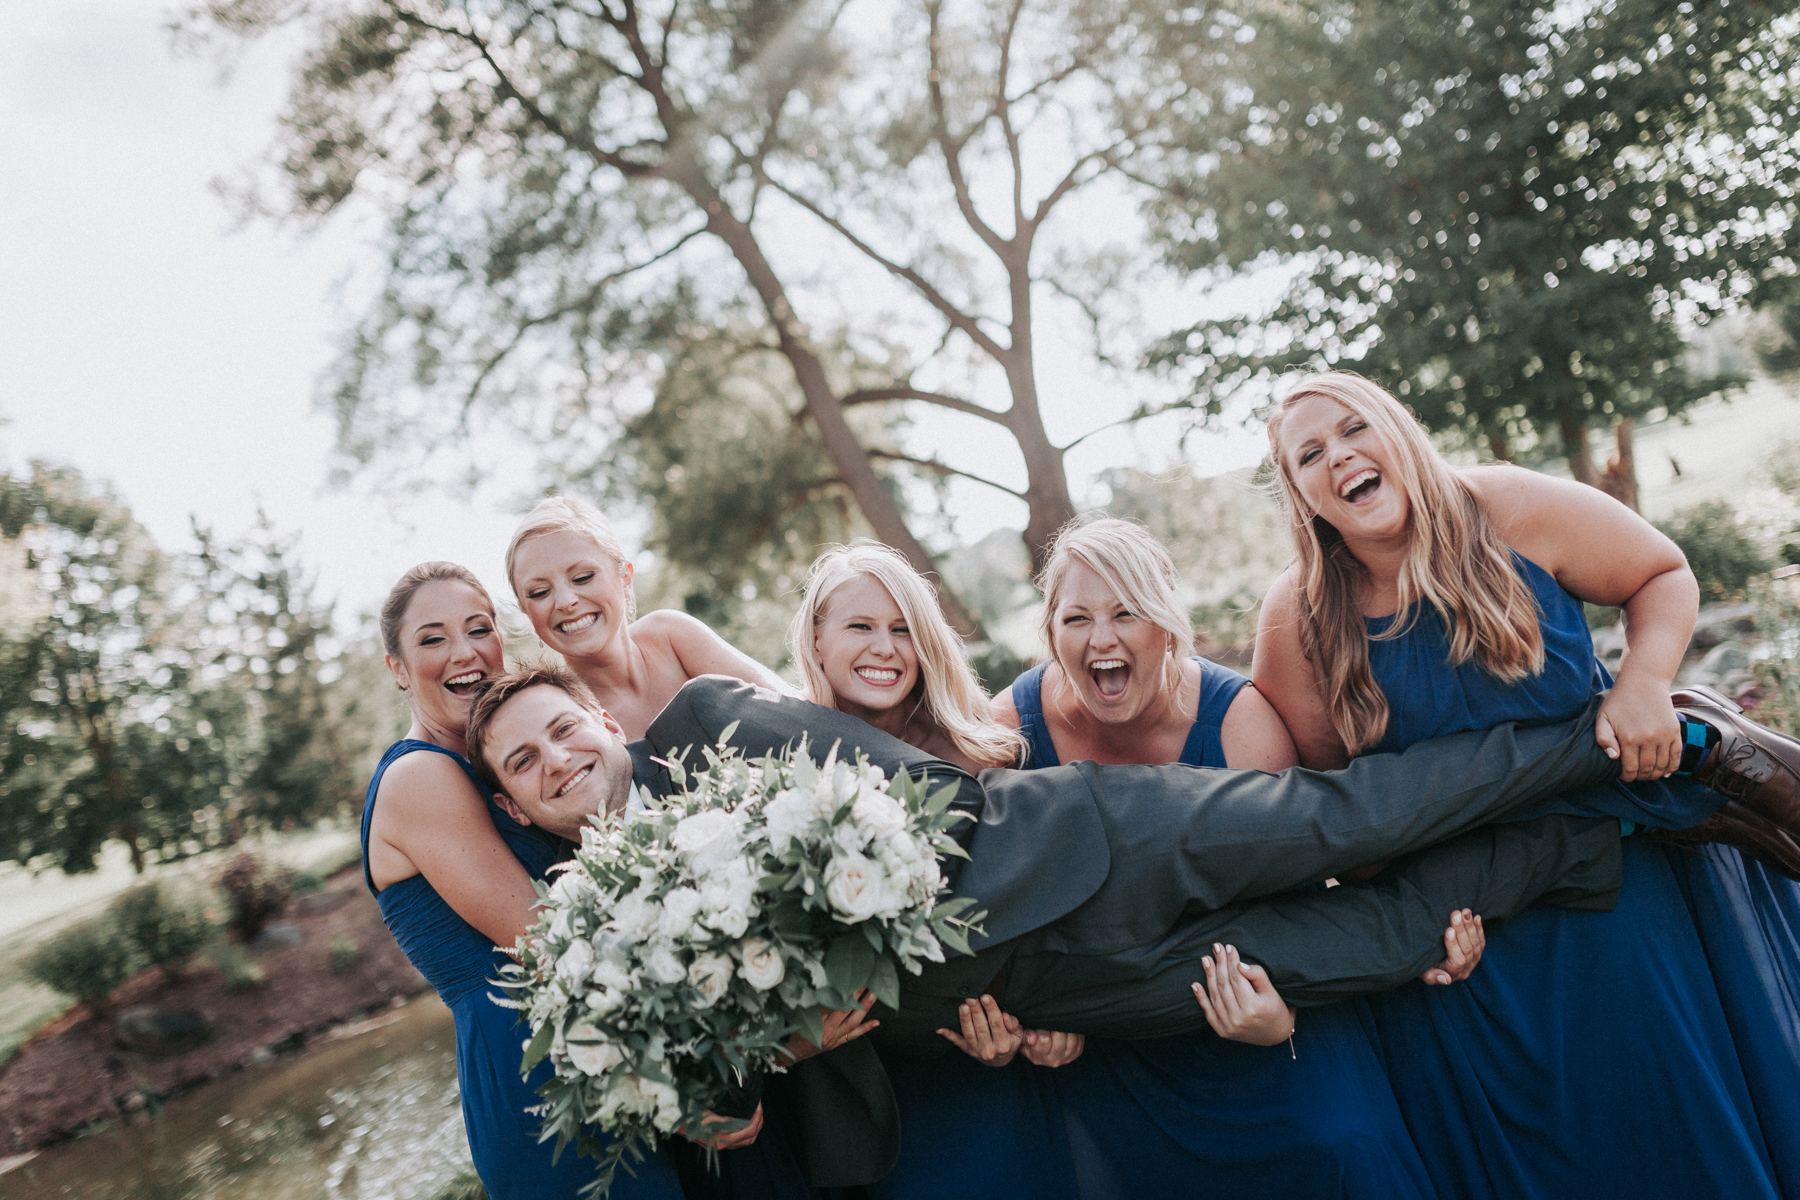 outdoor_wedding_groom_bridesmaids.jpg